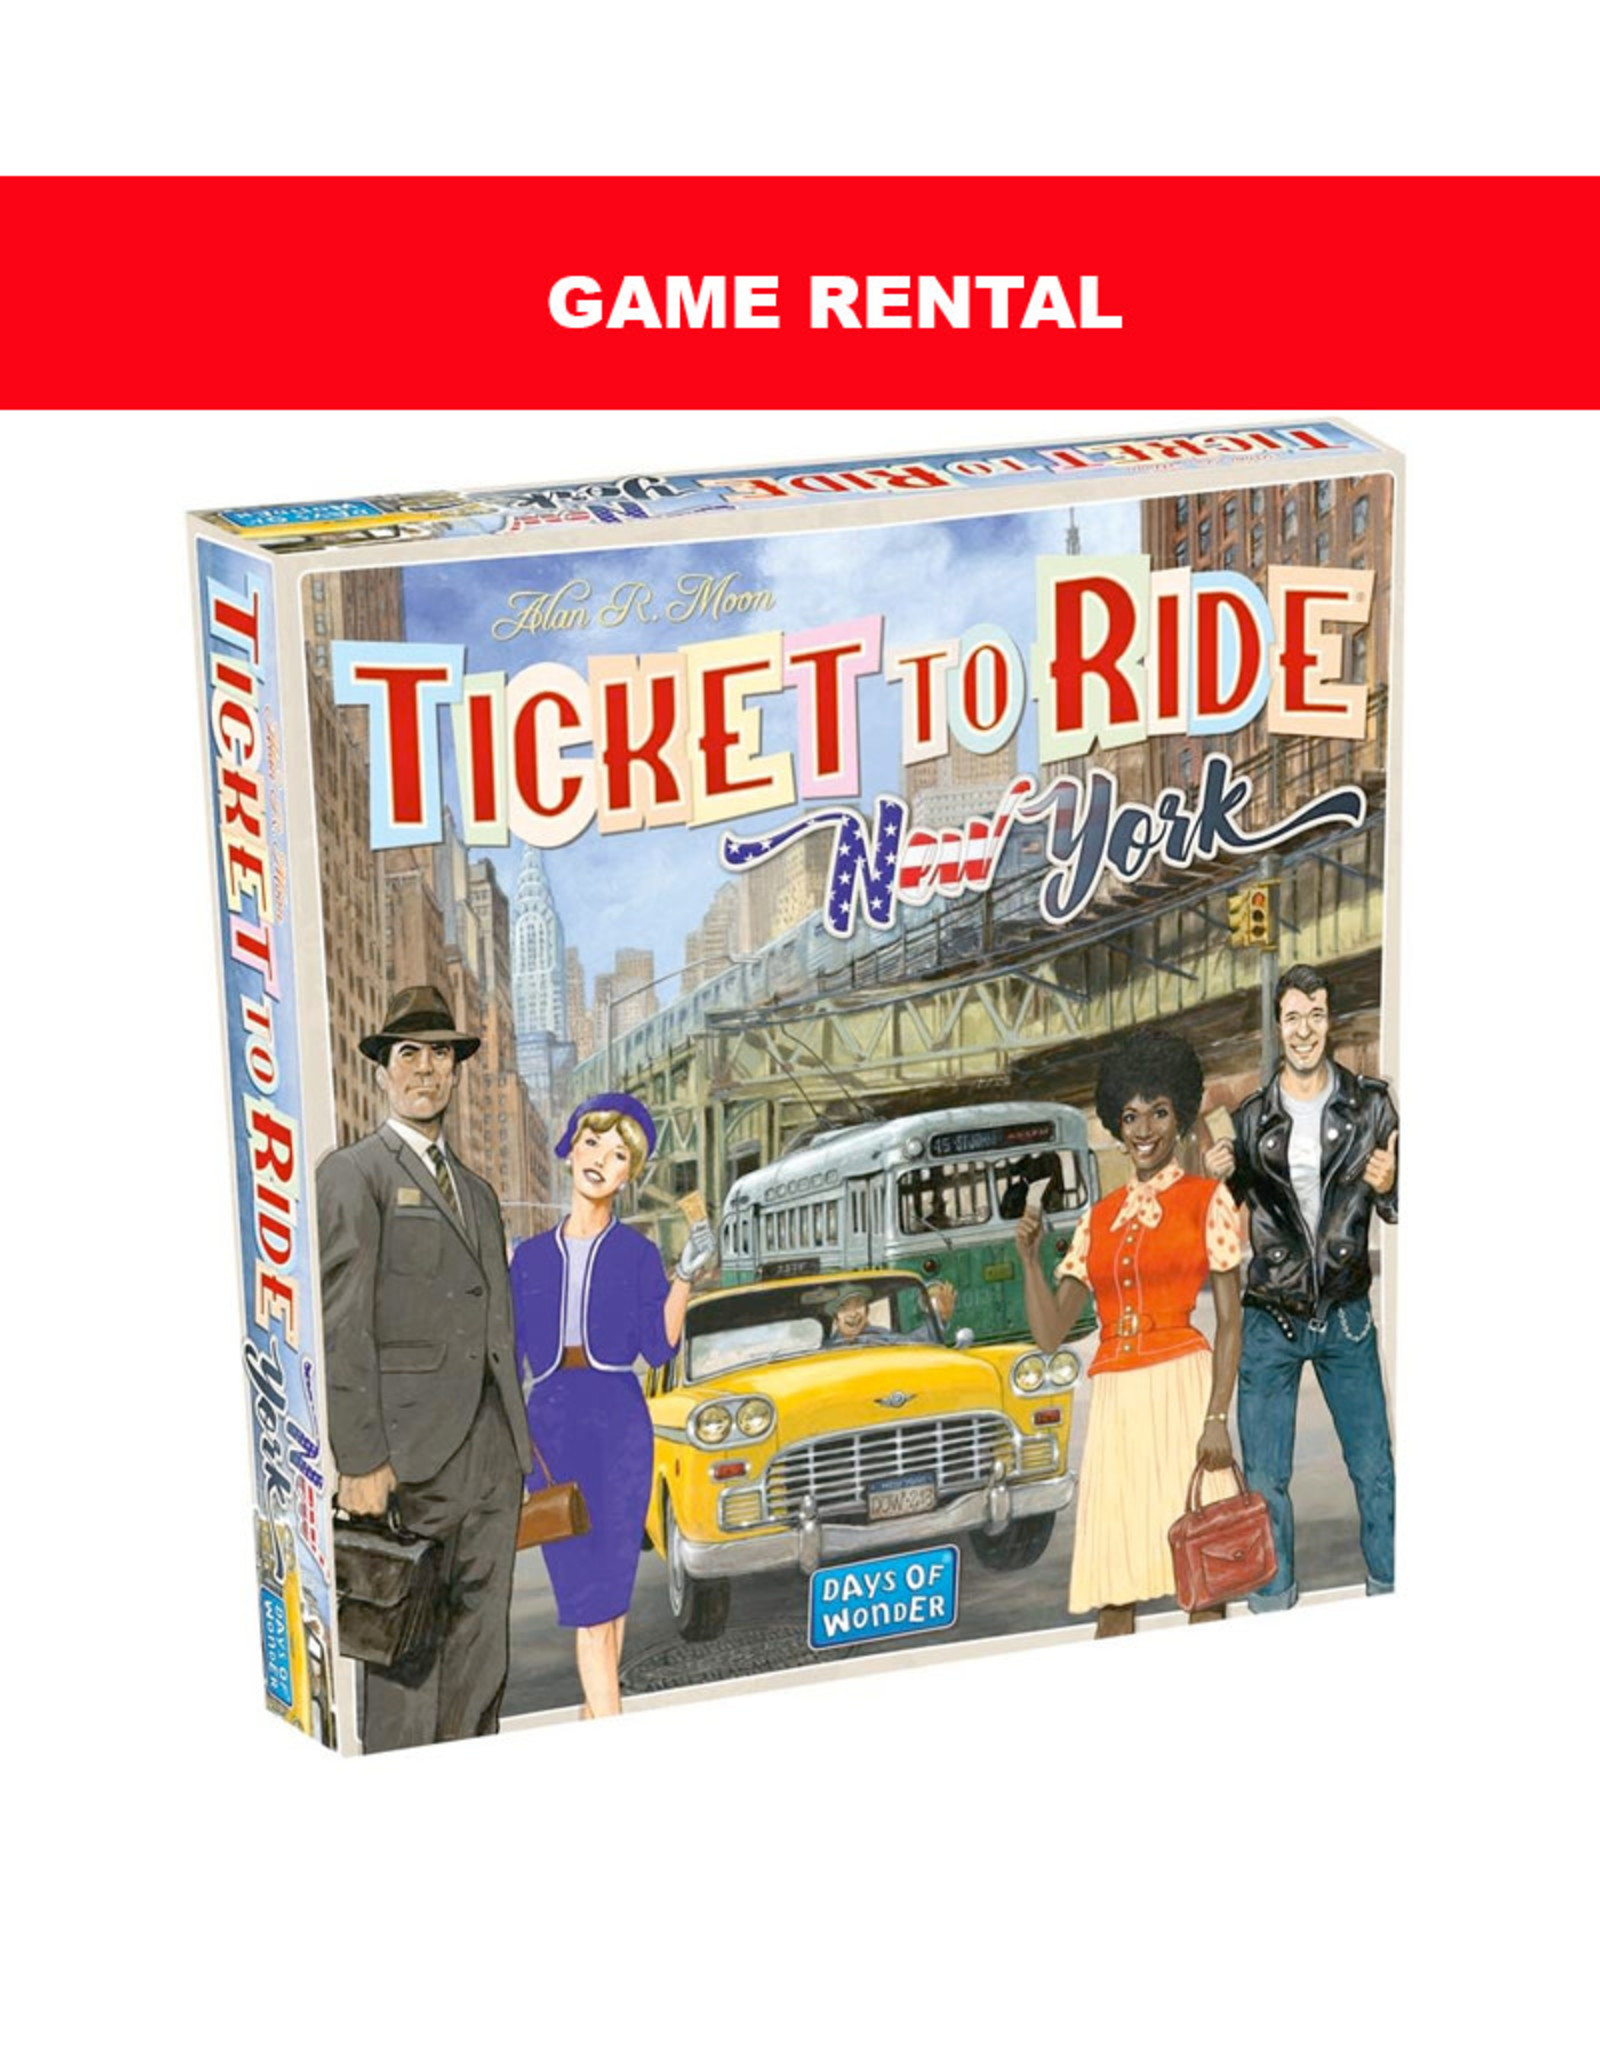 Days of Wonder (RENT) Ticket to Ride New York for a Day. Love It! Buy It!